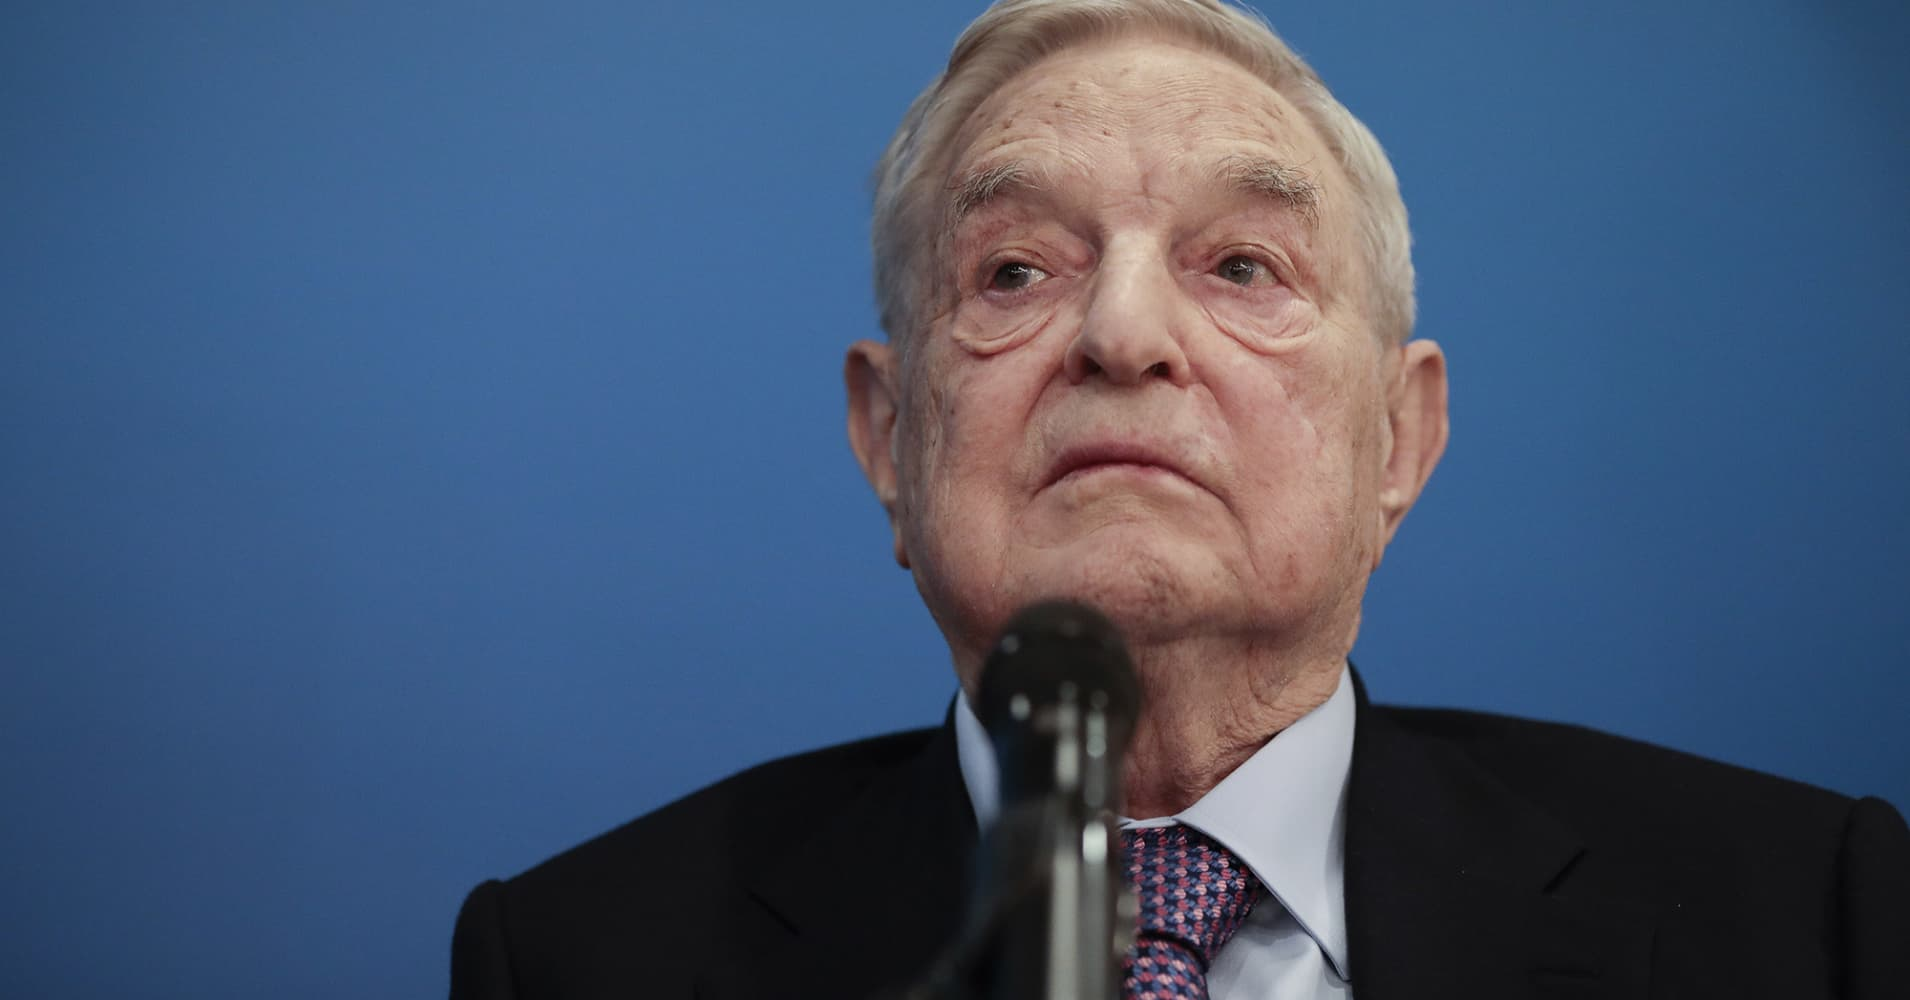 Billionaire liberal donor George Soros may continue midterm investment